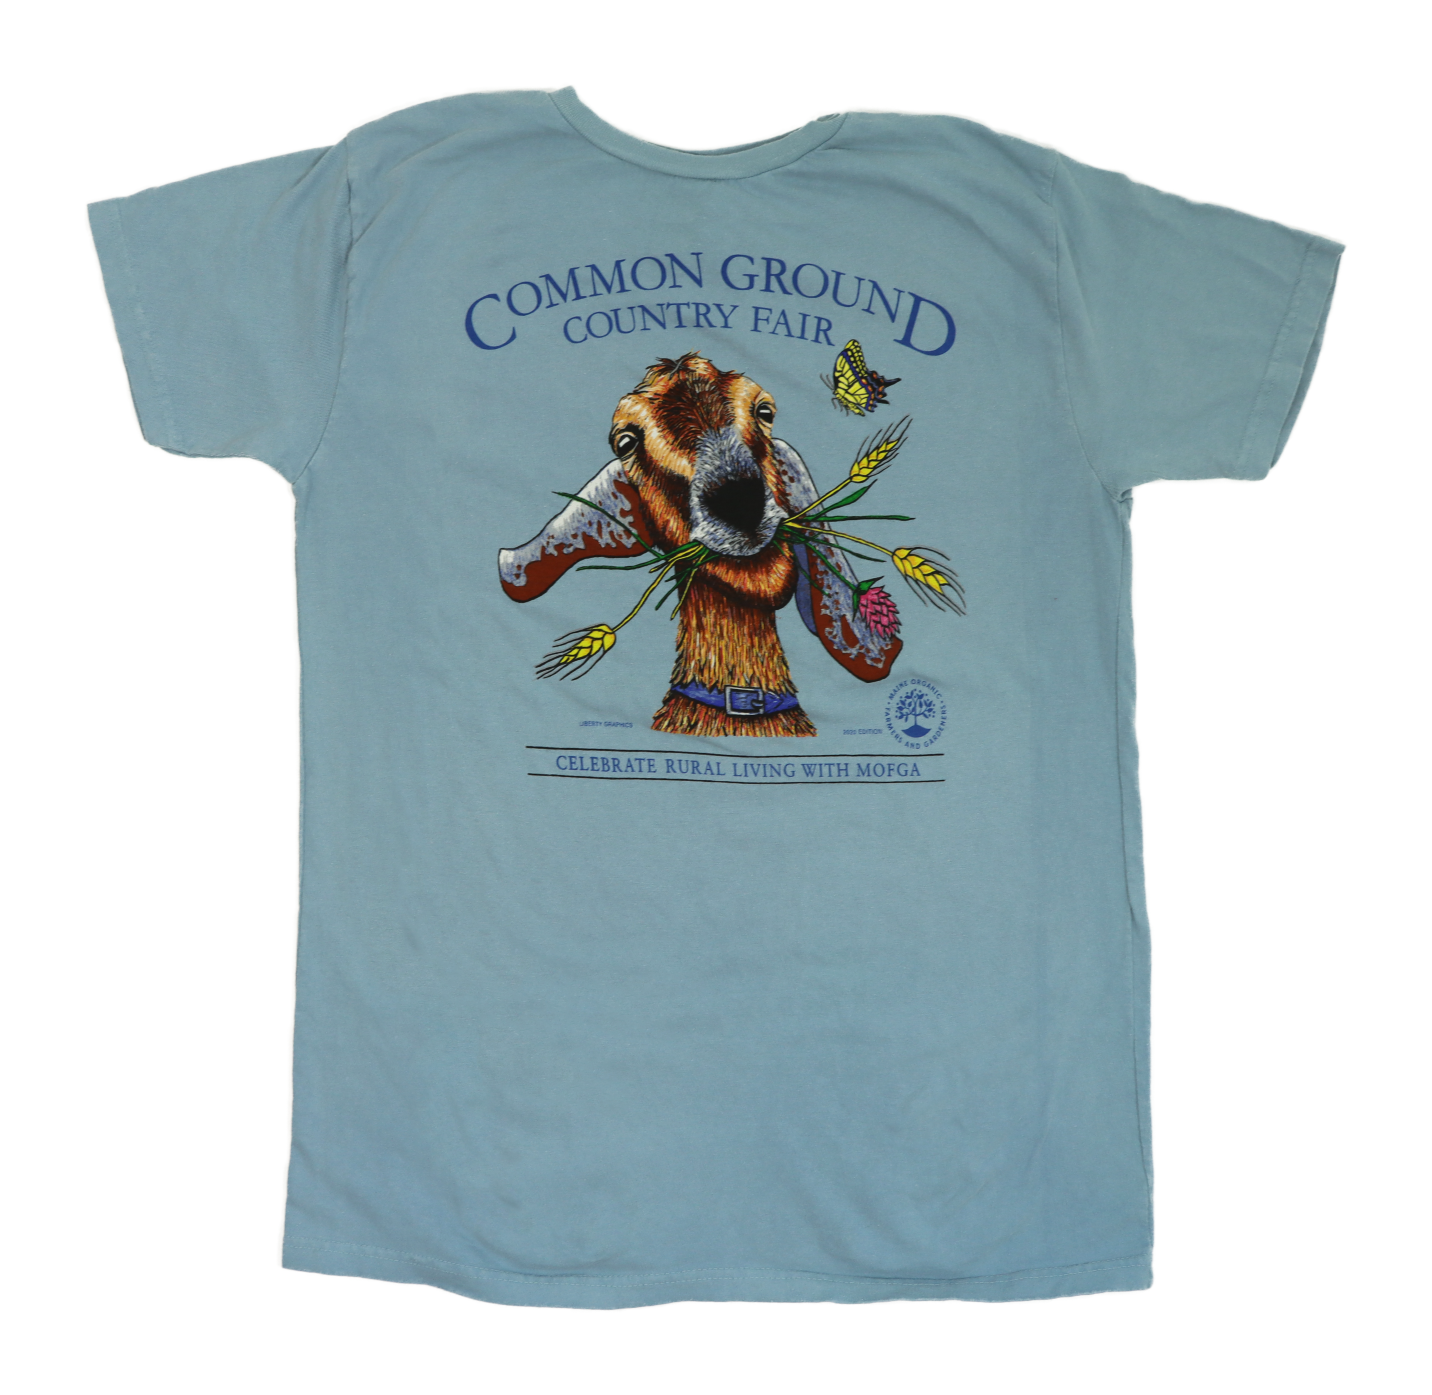 2015 Common Ground Country Fair Youth short-sleeve t-shirt. Joyful Goat design. Color Stone Blue.